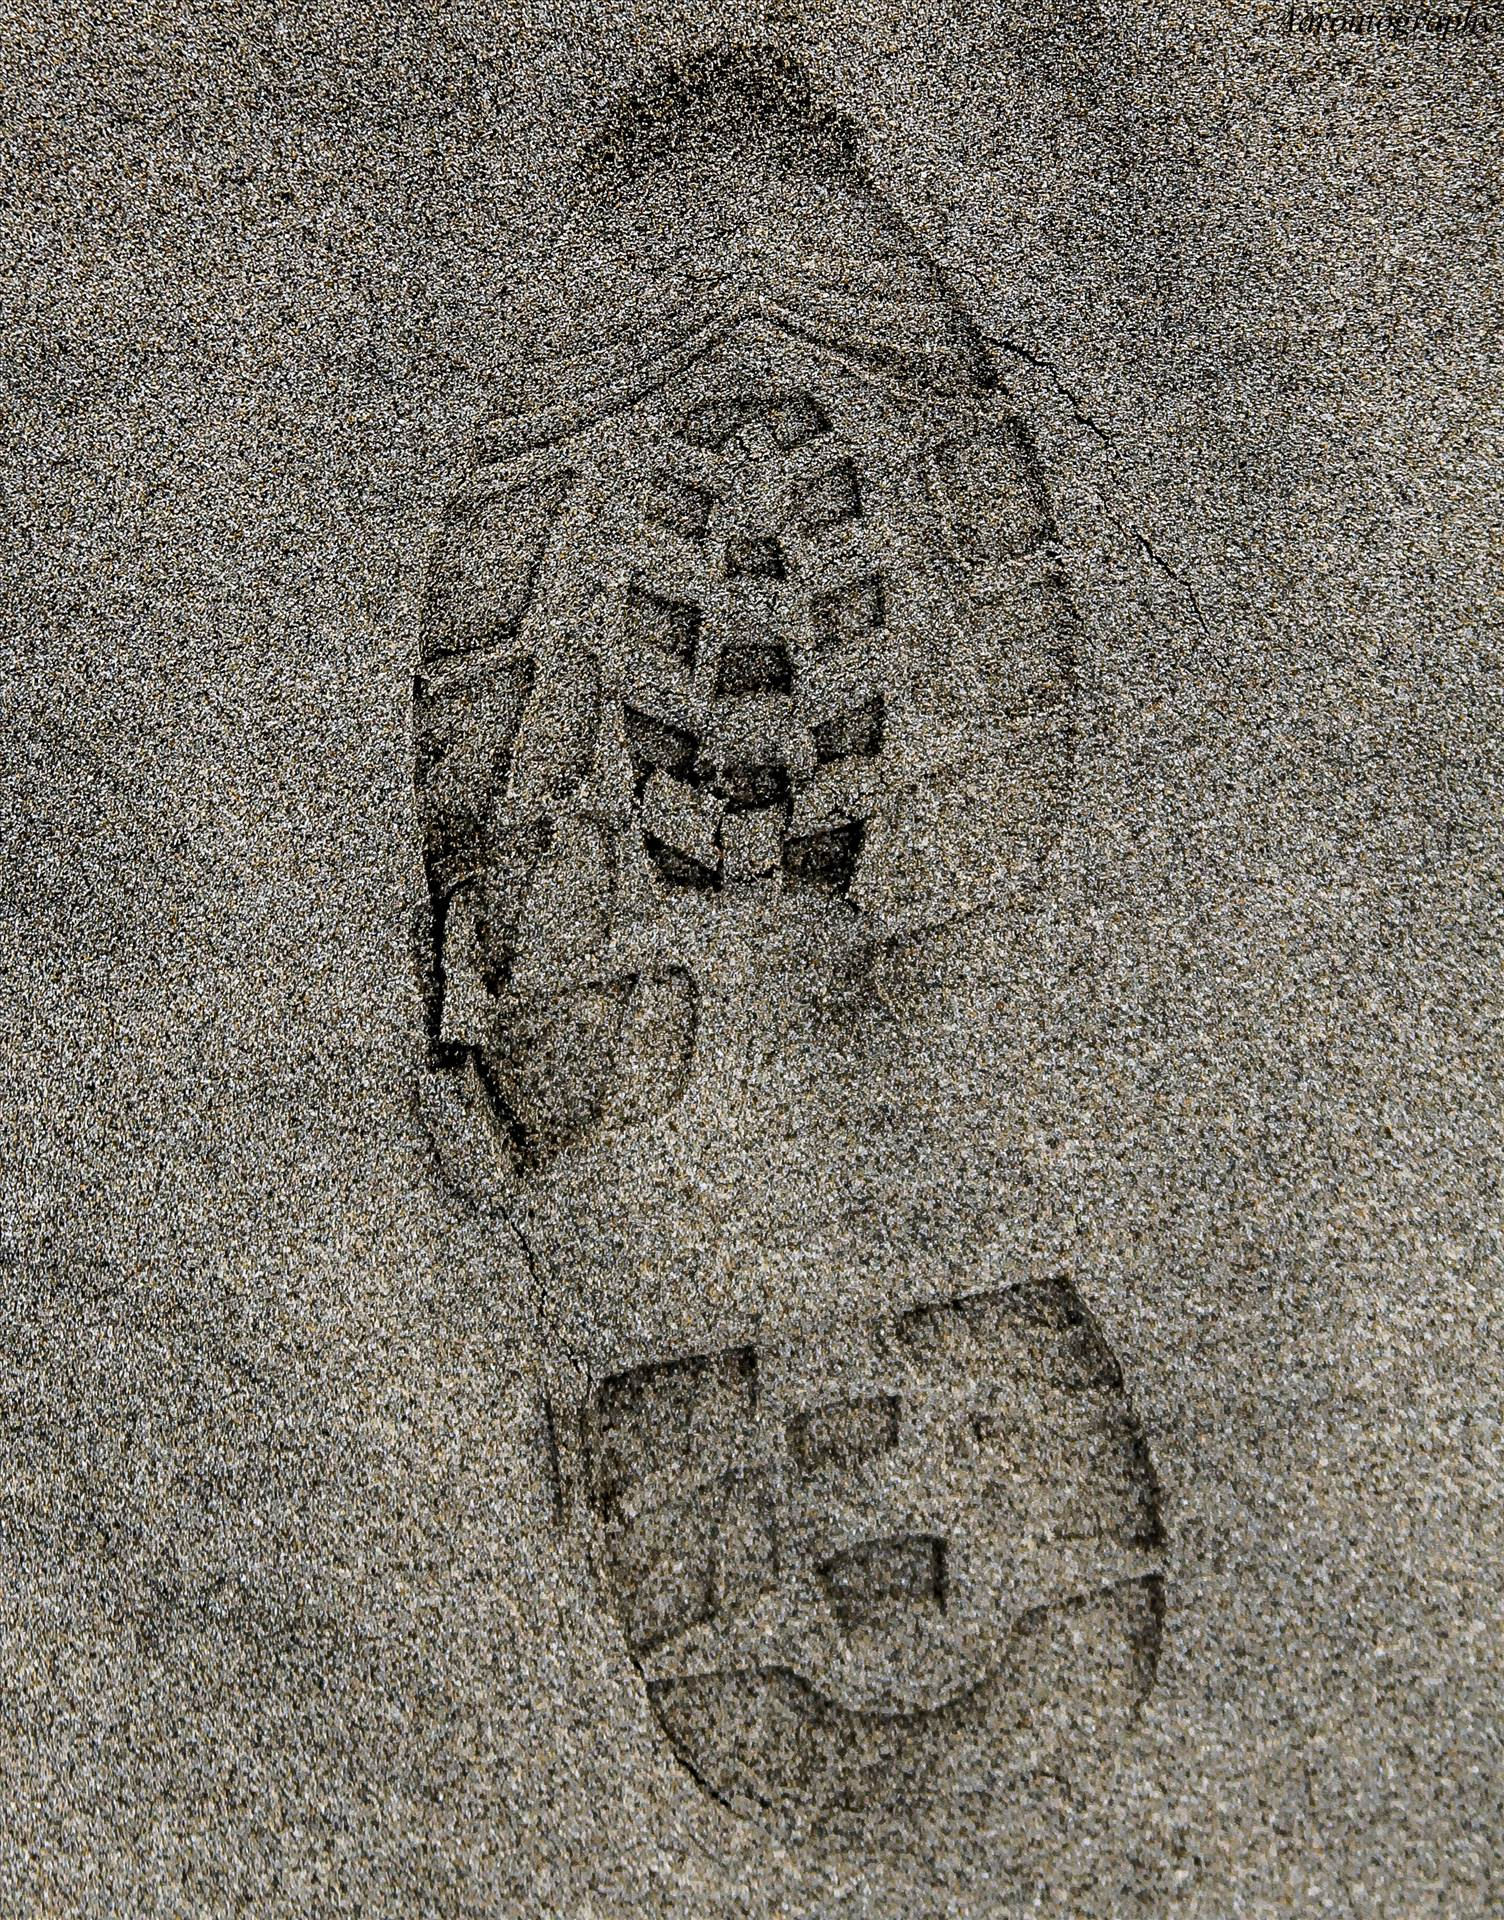 footprints.jpg - undefined by Aaron